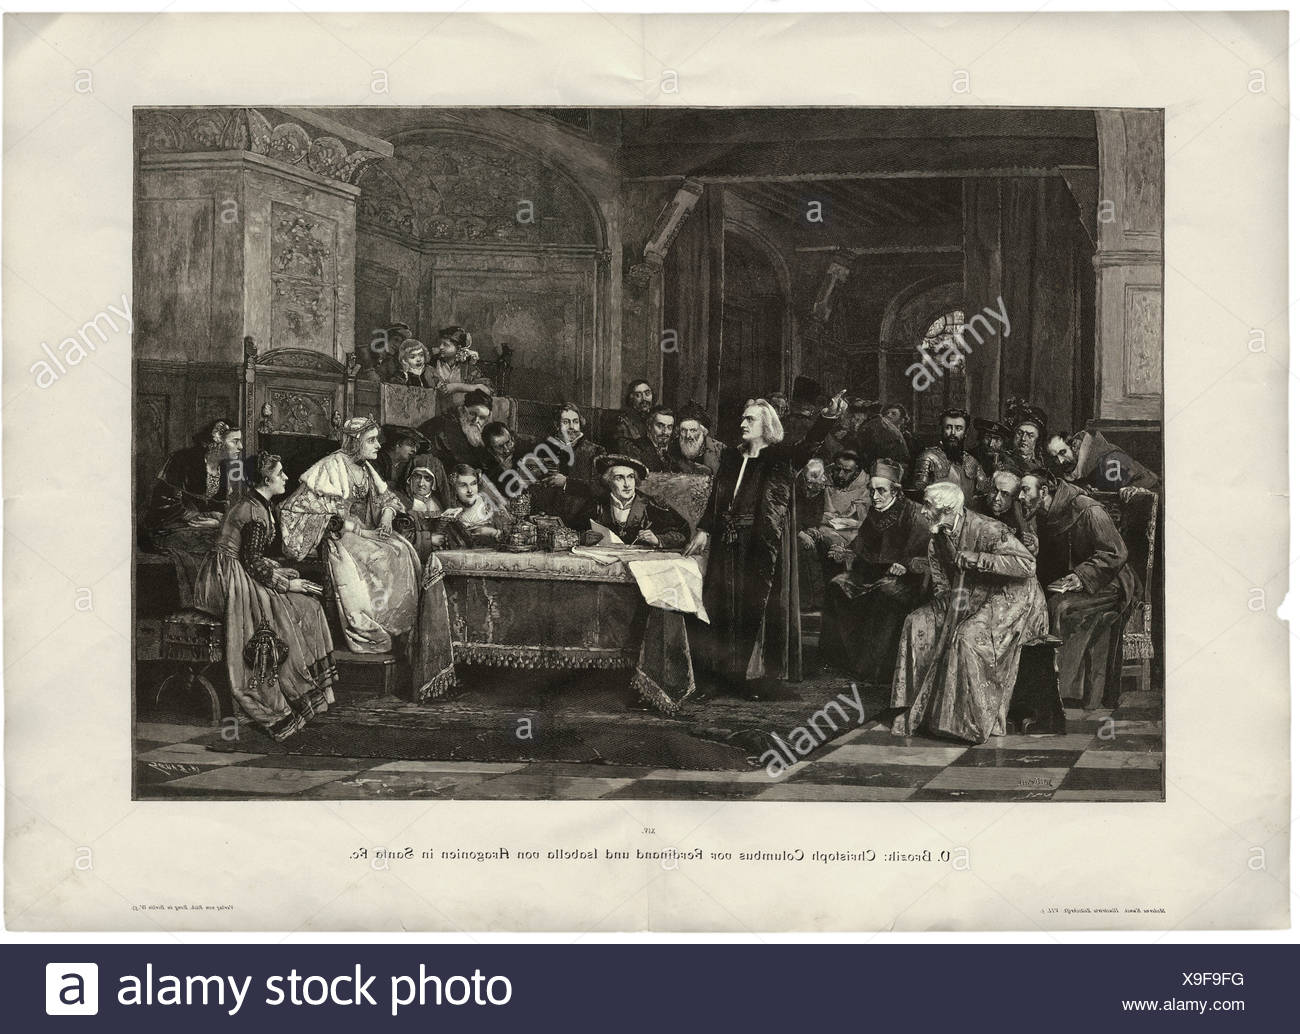 Kolumbus, Christoph, 1451 - 20.5.1506, Italian mariner and discoverer, with King Ferdinand II of Aragon and Queen Isabella I of - Stock Image